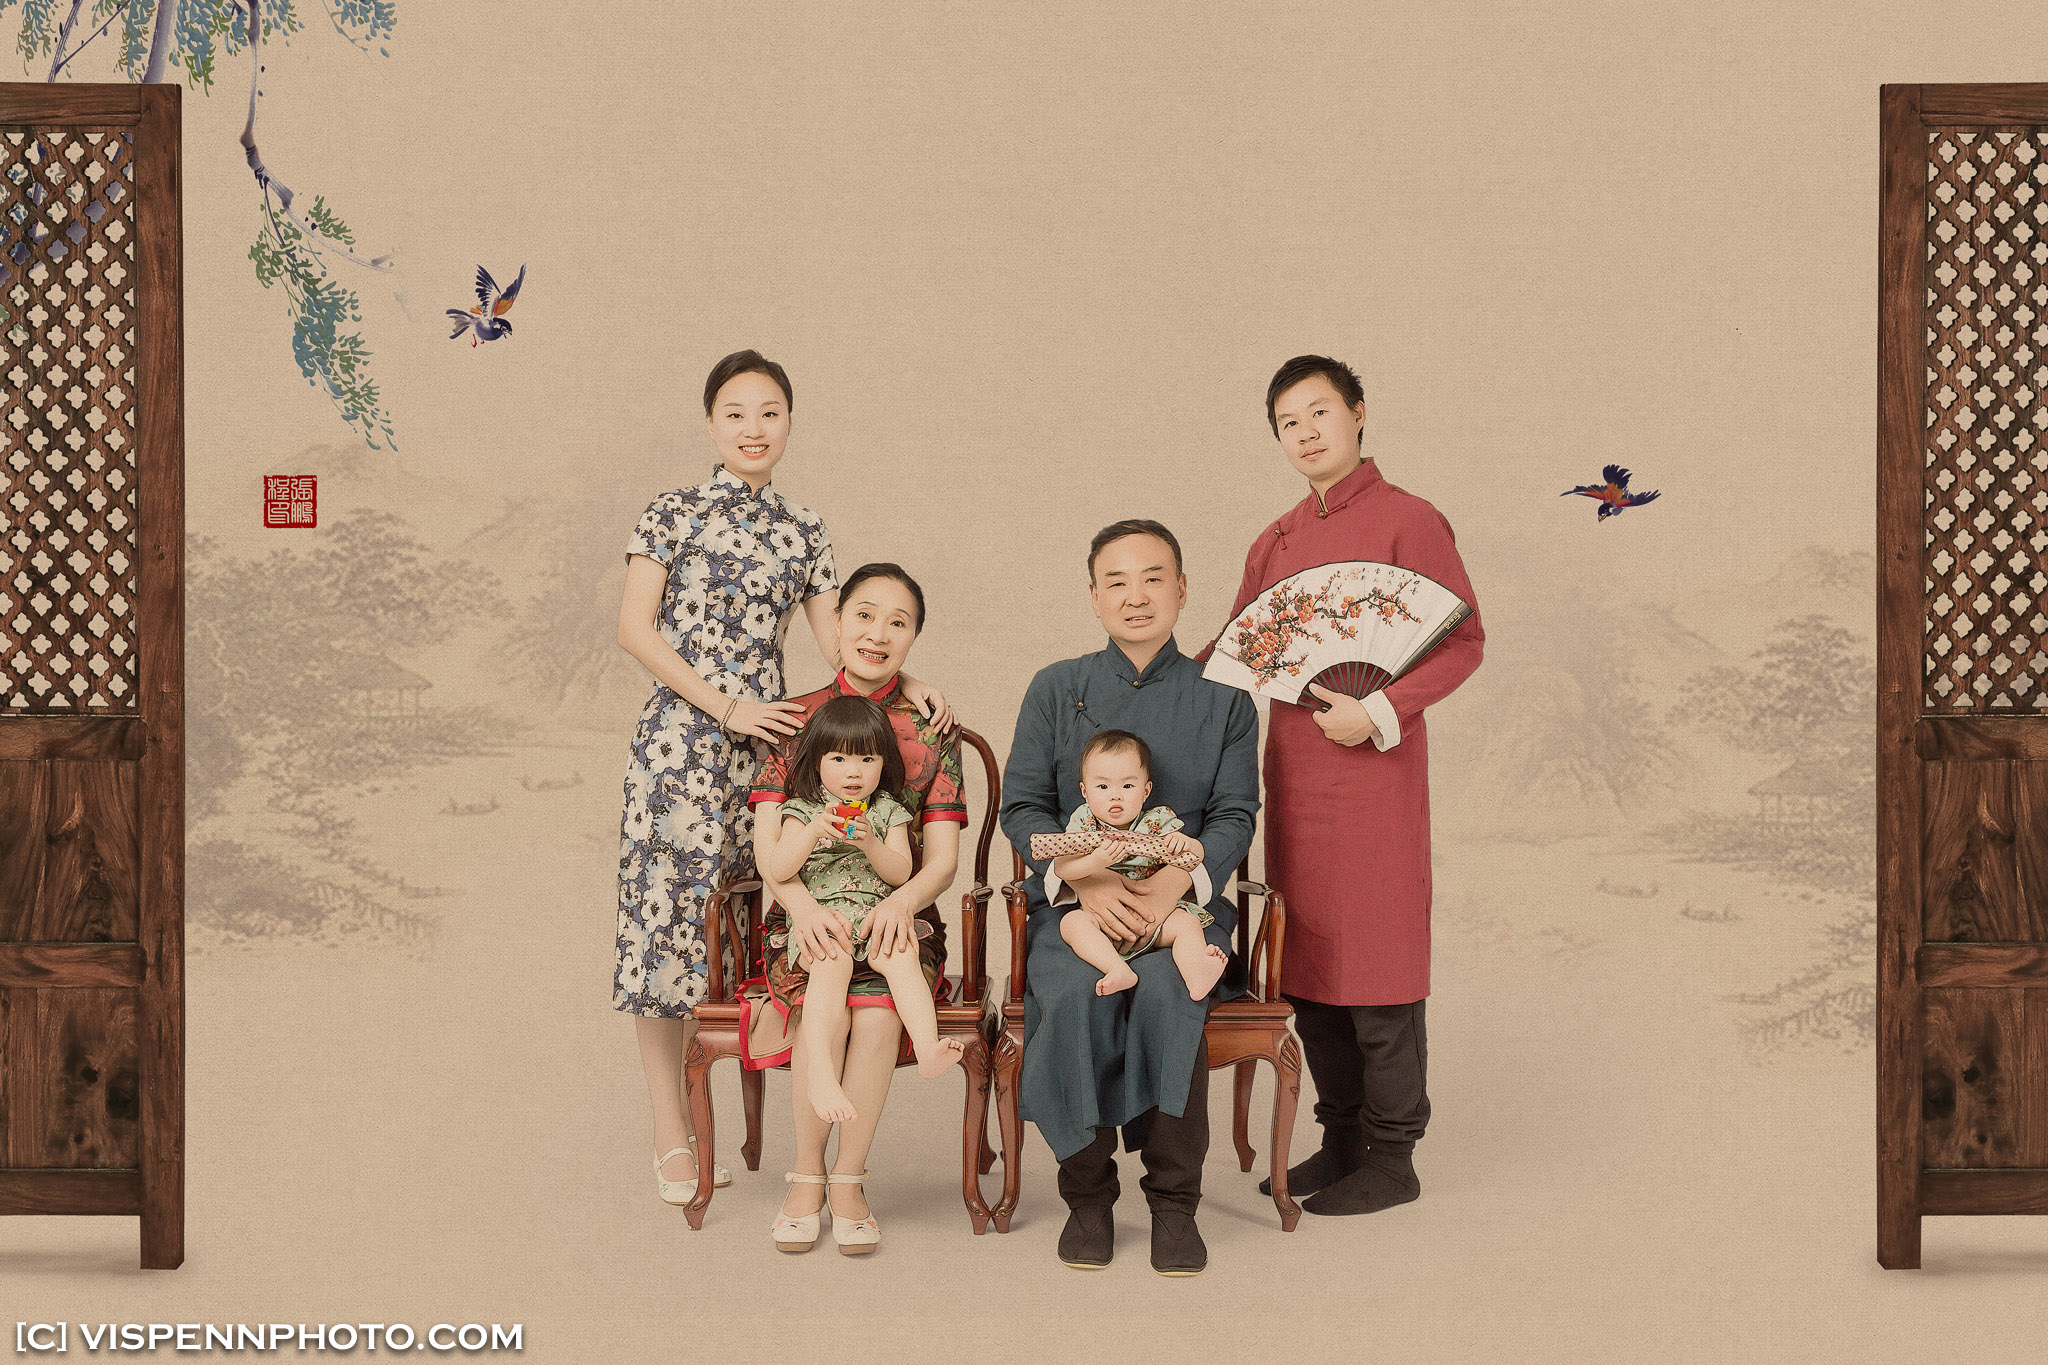 Melbourne Newborn Baby Family Photo BaoBao VISPENN 墨尔本 儿童 宝宝 百天照 满月照 孕妇照 全家福 KIDS VISPENN SelinaFU 0325